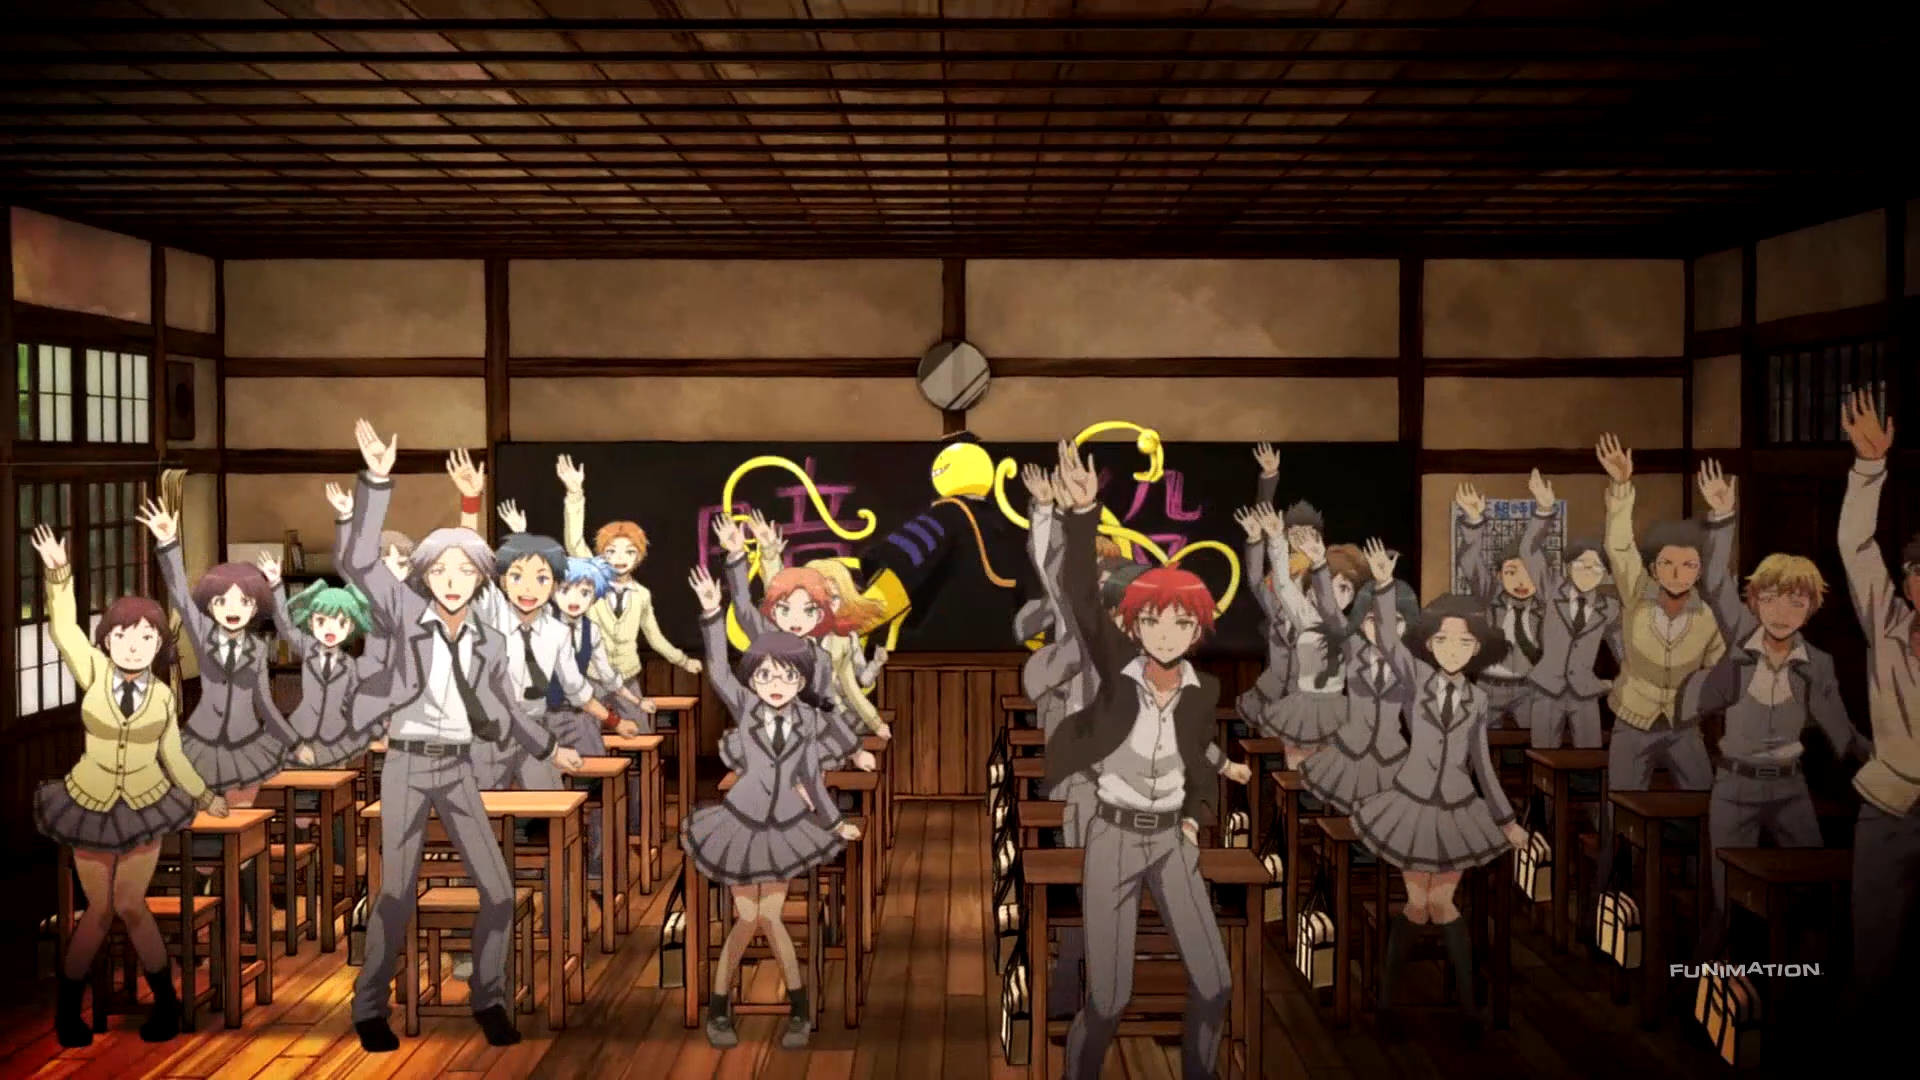 1920x1080 Assassination Classroom: le Manga sort en Anime et en Film Live